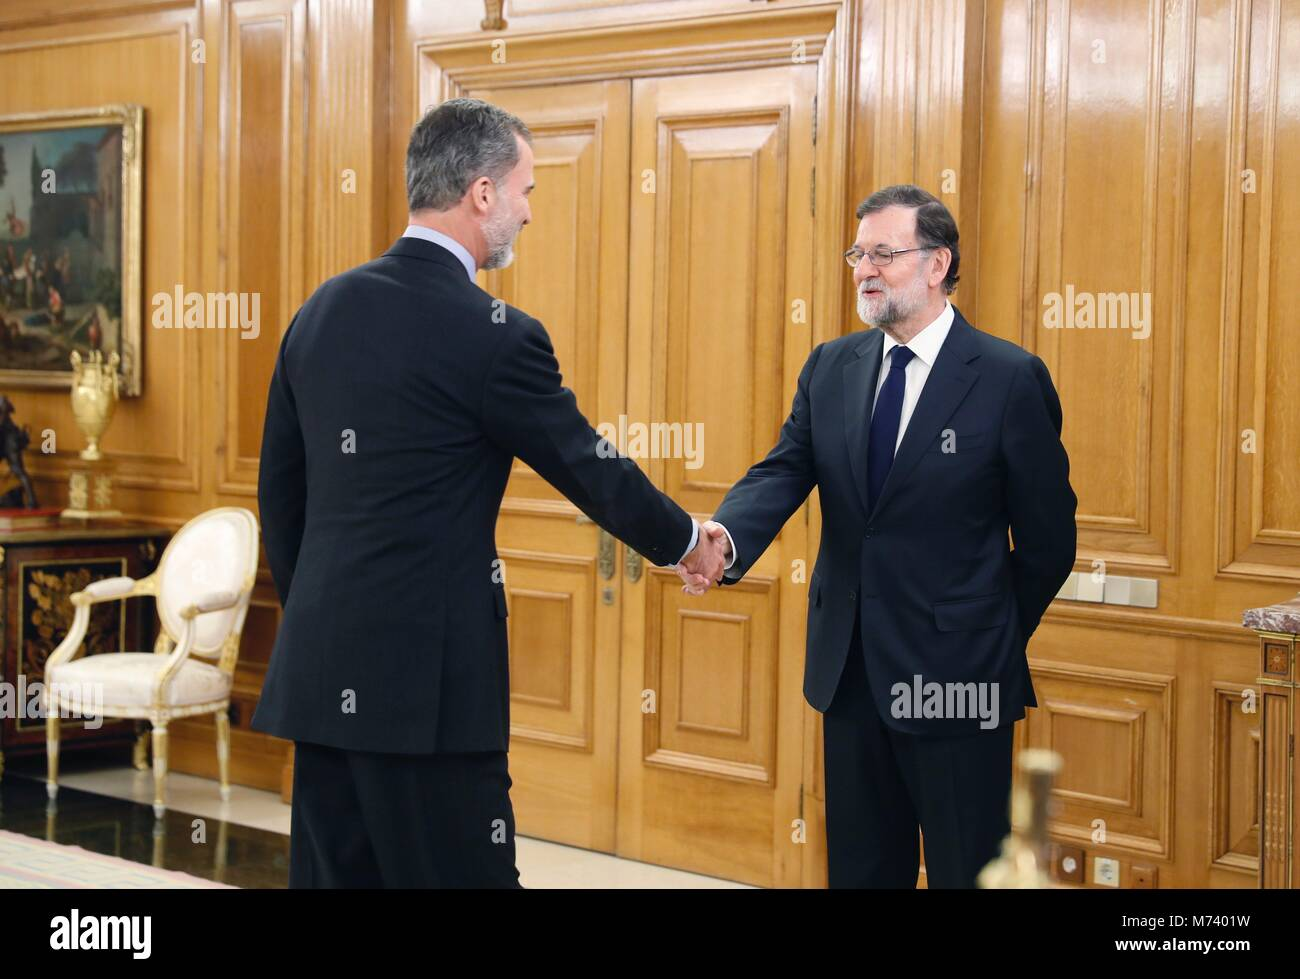 King felipe vi of spain l greets spanish prime minister mariano king felipe vi of spain l greets spanish prime minister mariano rajoy r during new spanish minister of economy industry and competitiveness roman m4hsunfo